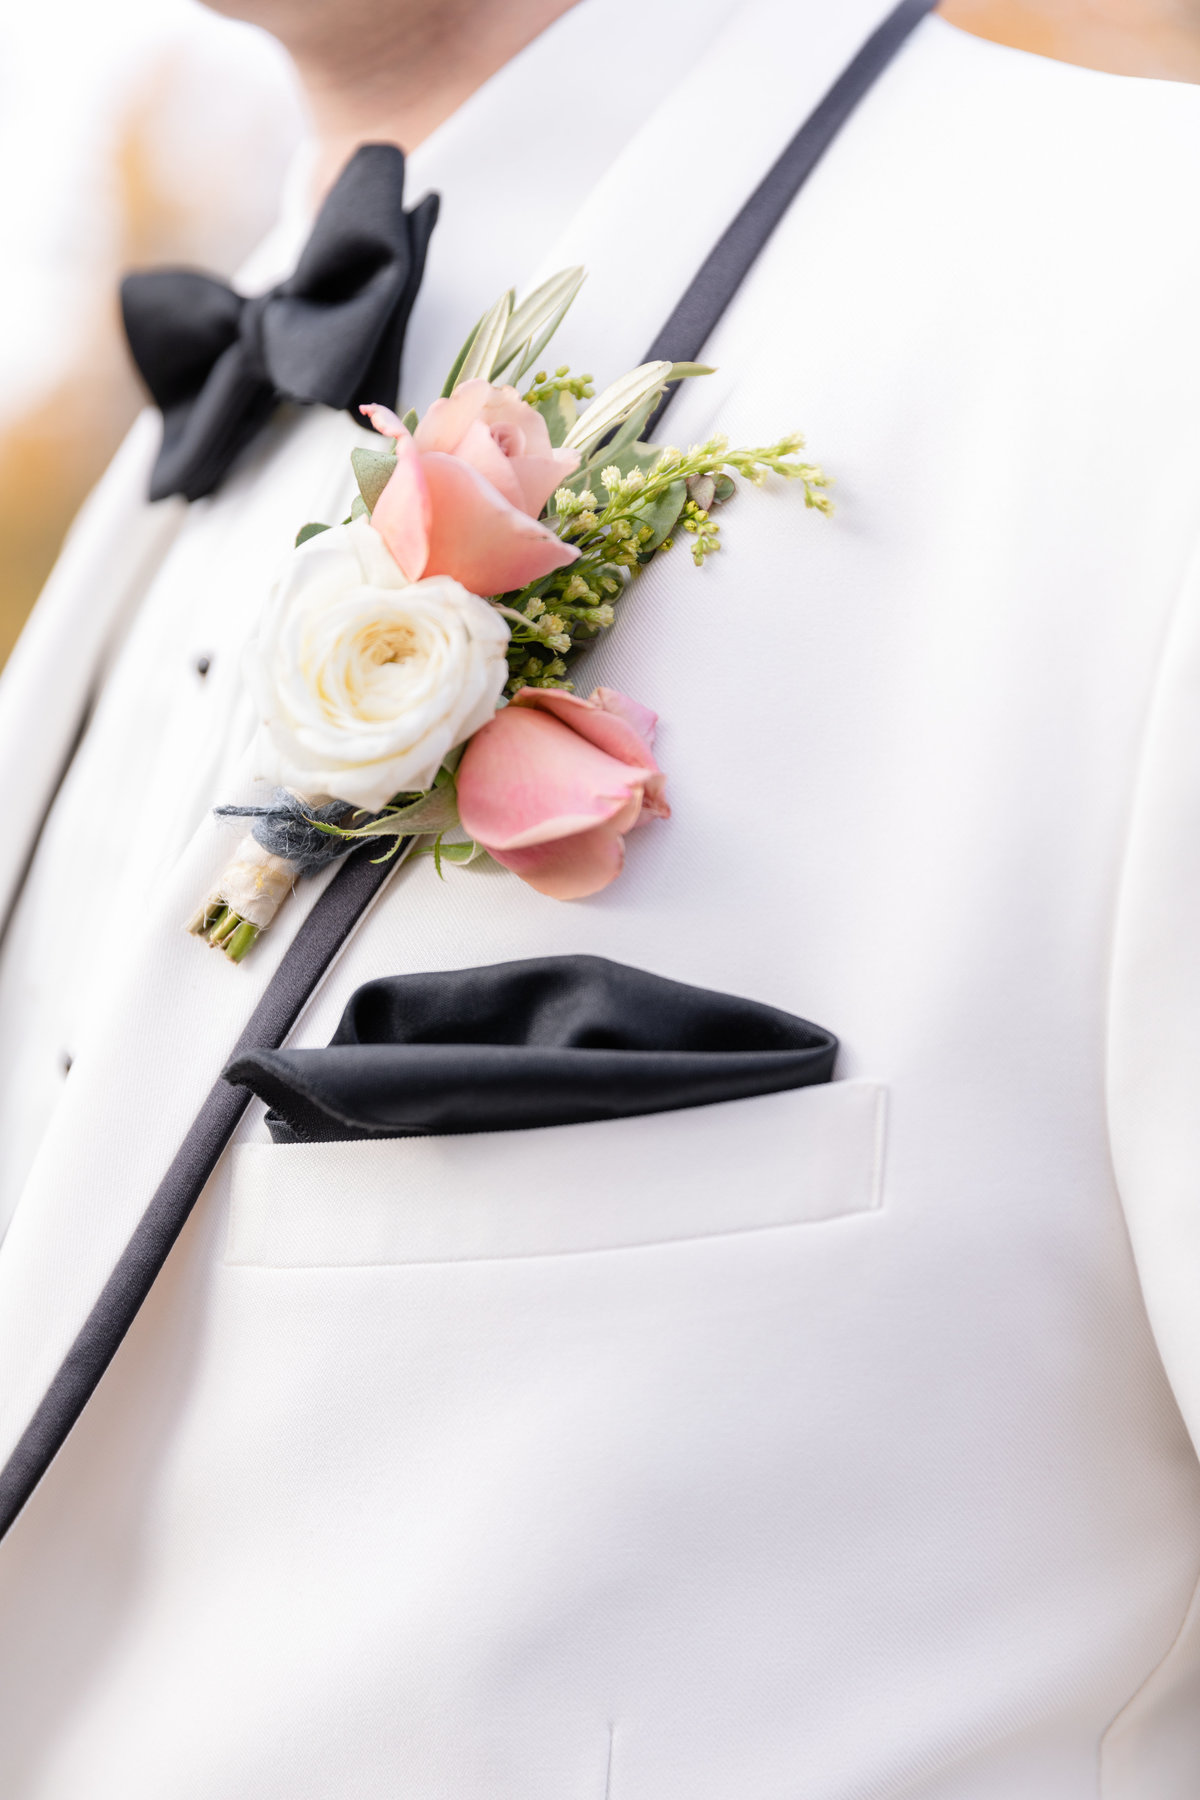 NJ groom in white tuxedo with black details and pink and white corsage